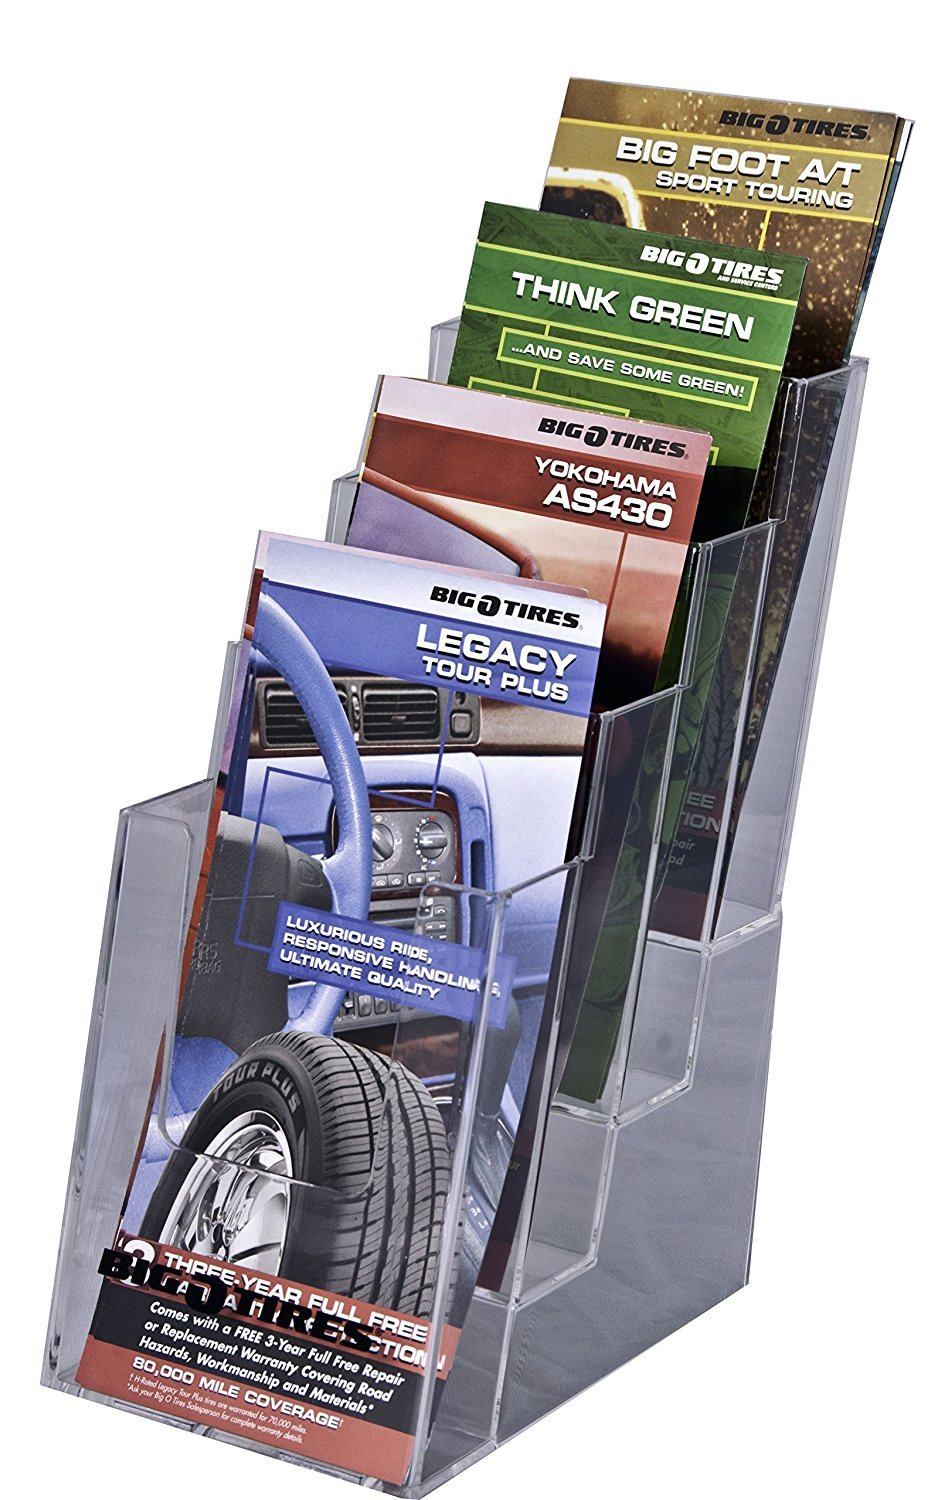 Clear-Ad - LHF-S104 - Acrylic Slant Back 4 Tier Trifold Brochure Display - Plastic Literature Holder for Flyers, Booklets, Bills, Mail, Letters, Cards, Pamphlets, Maps (Pack of 4) by Clear-Ad (Image #1)